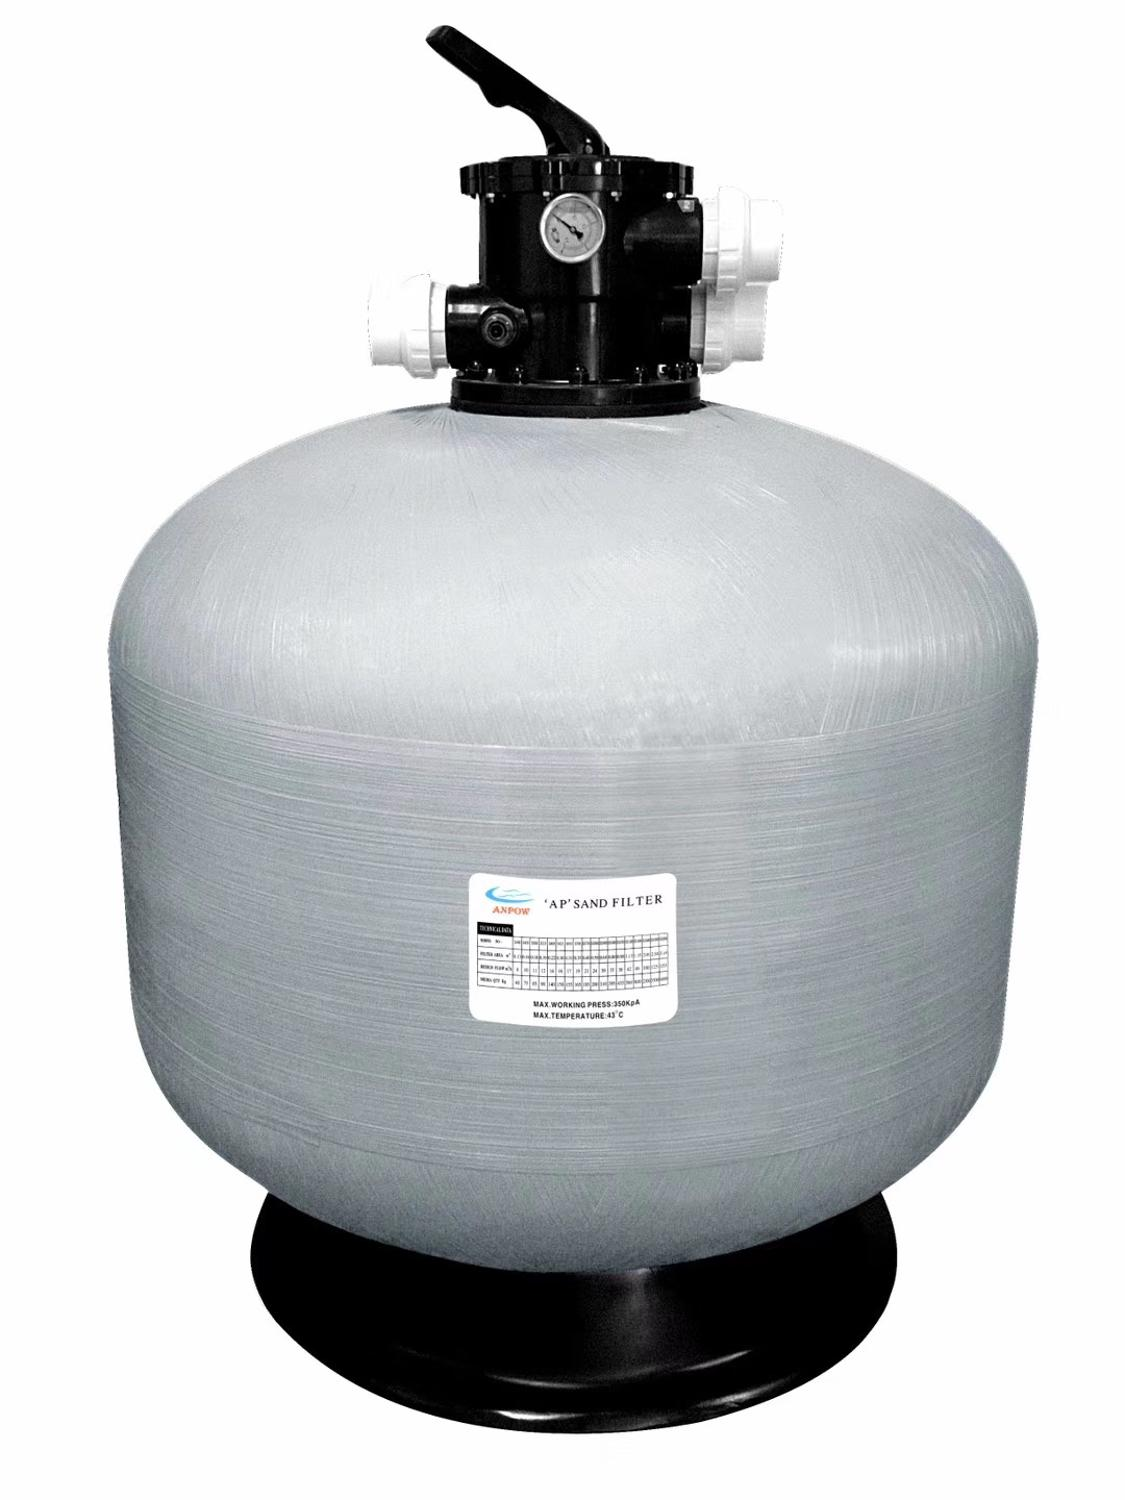 Egoes Top-mount Sand Filter For Swimming Pool Filter